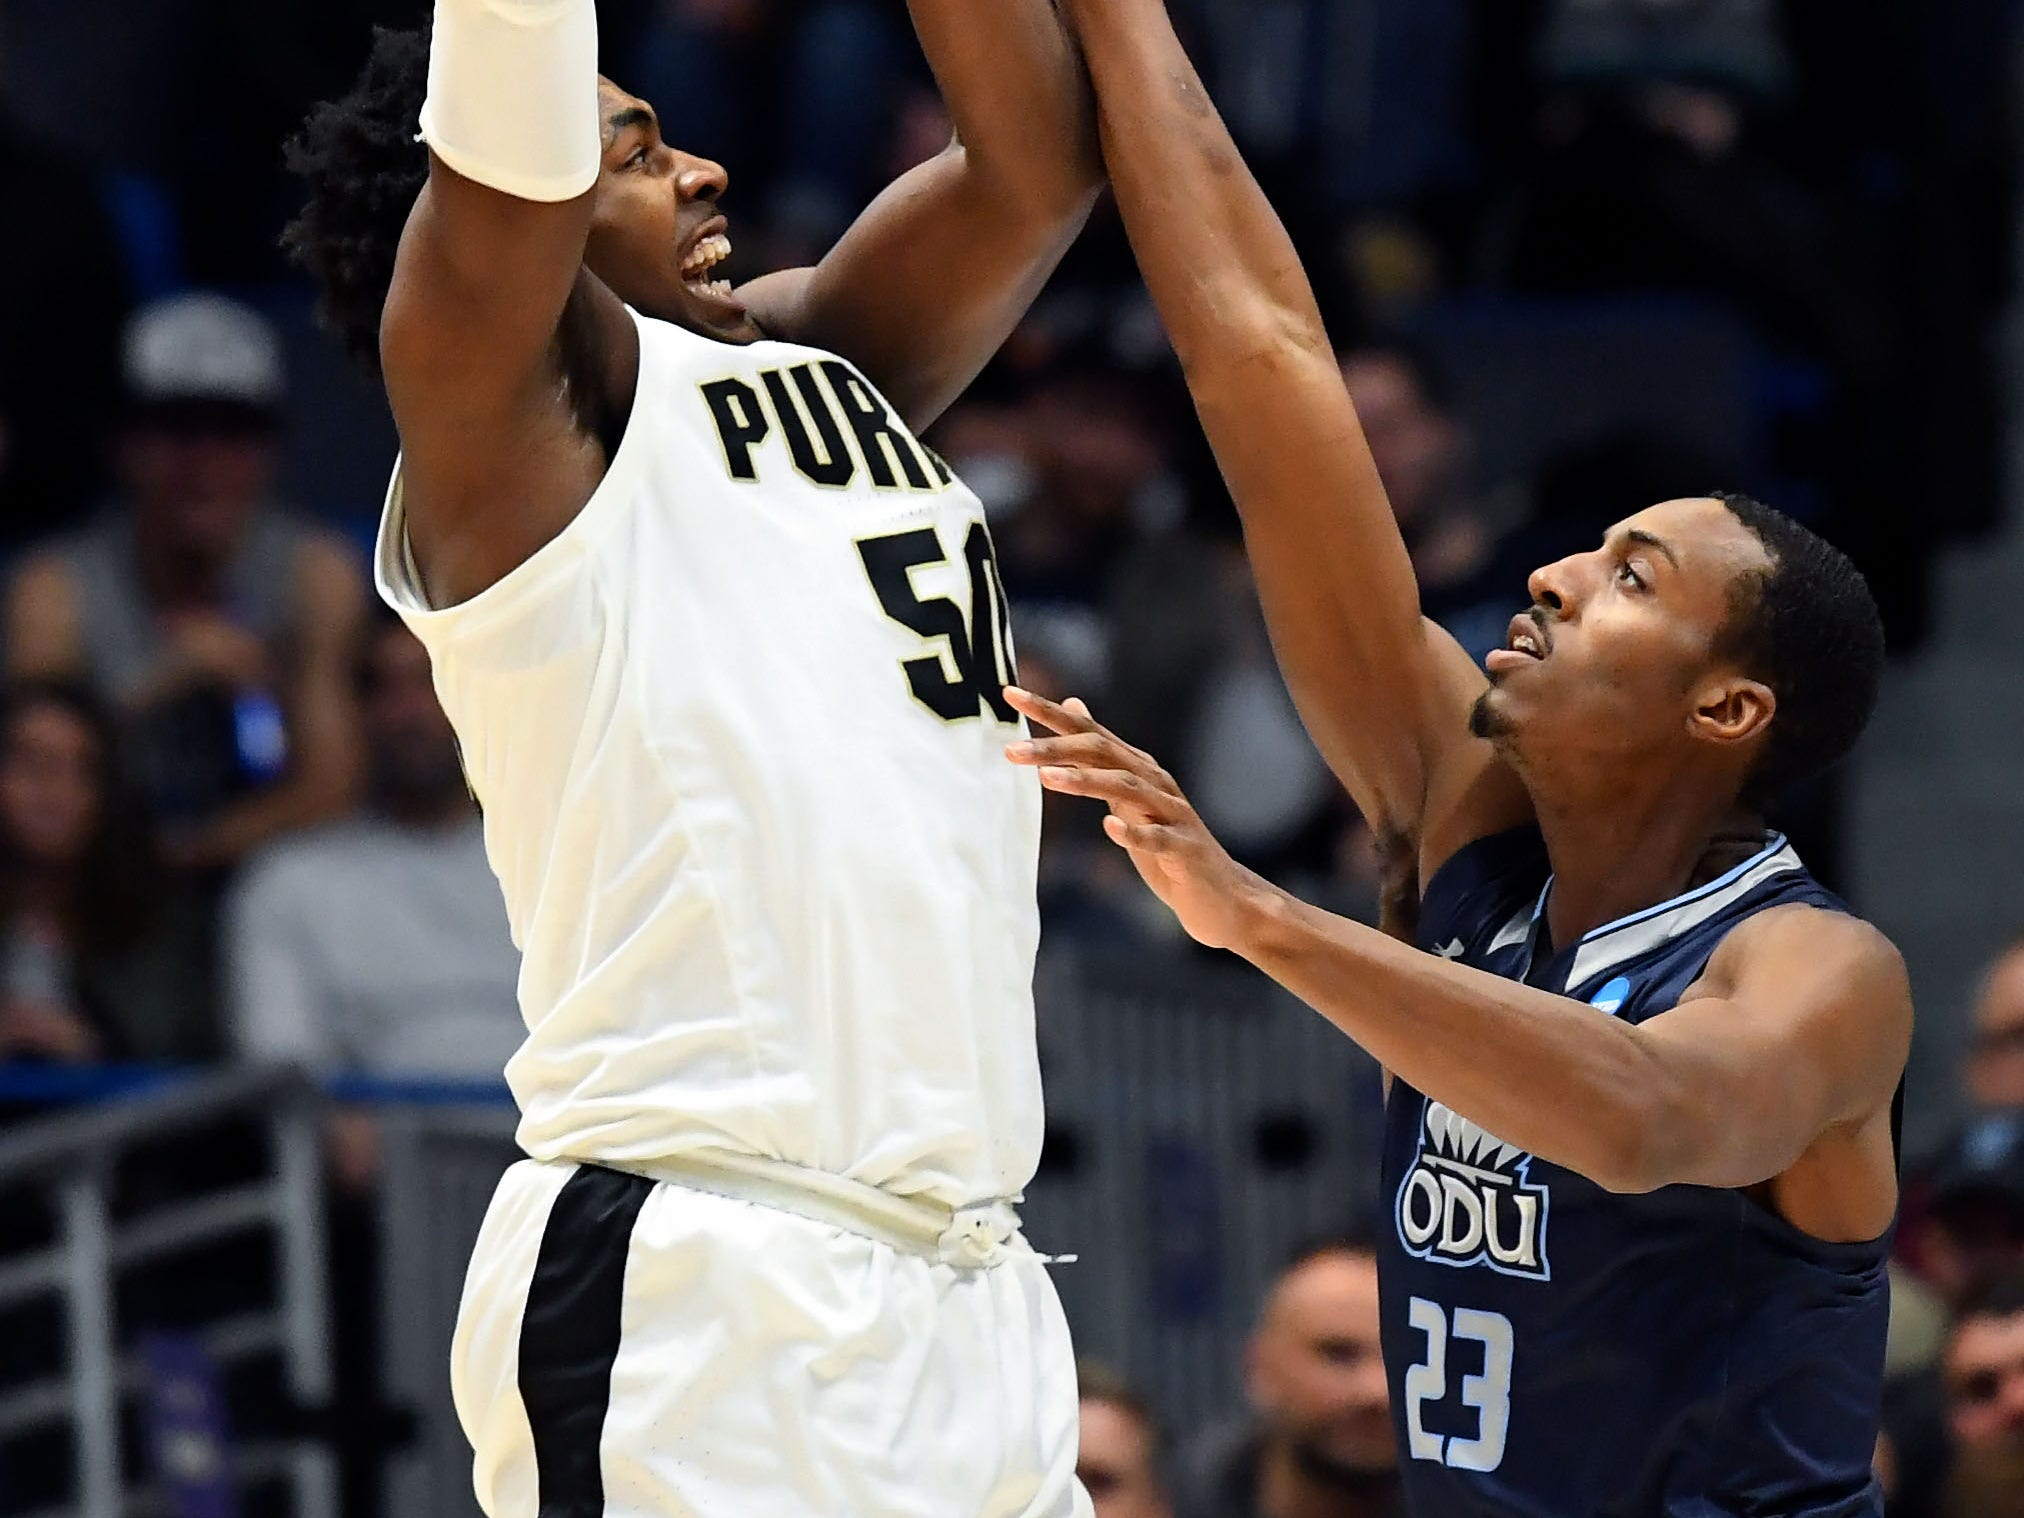 Purdue Boilermakers forward Trevion Williams (50) attempts a shot past Old Dominion Monarchs forward Dajour Dickens (23) during the first half of a game in the first round of the 2019 NCAA Tournament at XL Center.